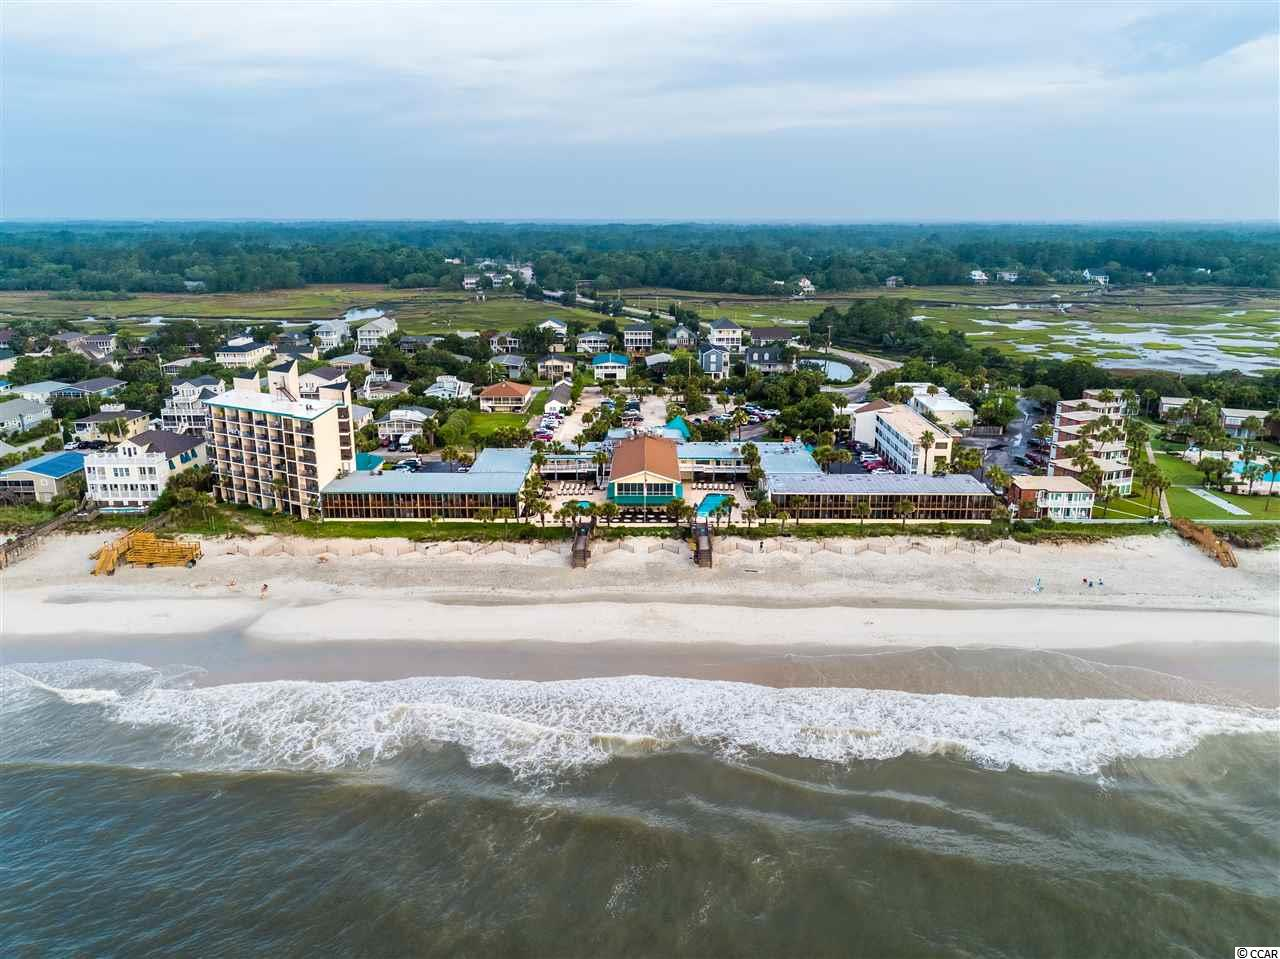 This furnished first floor Litchfield Inn condo has been completely renovated. Relax beside one of the two oceanfront pools or the beach below. Dine on-site poolside, or upstairs overlooking the beach at our areas only oceanfront restaurants. This condo has a positive cash flow for the current owner. Easy access to local shopping and sightseeing. We are the quiet side of the Grand Strand. Come see what makes this area so special and desirable for yourself! Square footage is approximate and not guaranteed. Buyer is responsible for verification.